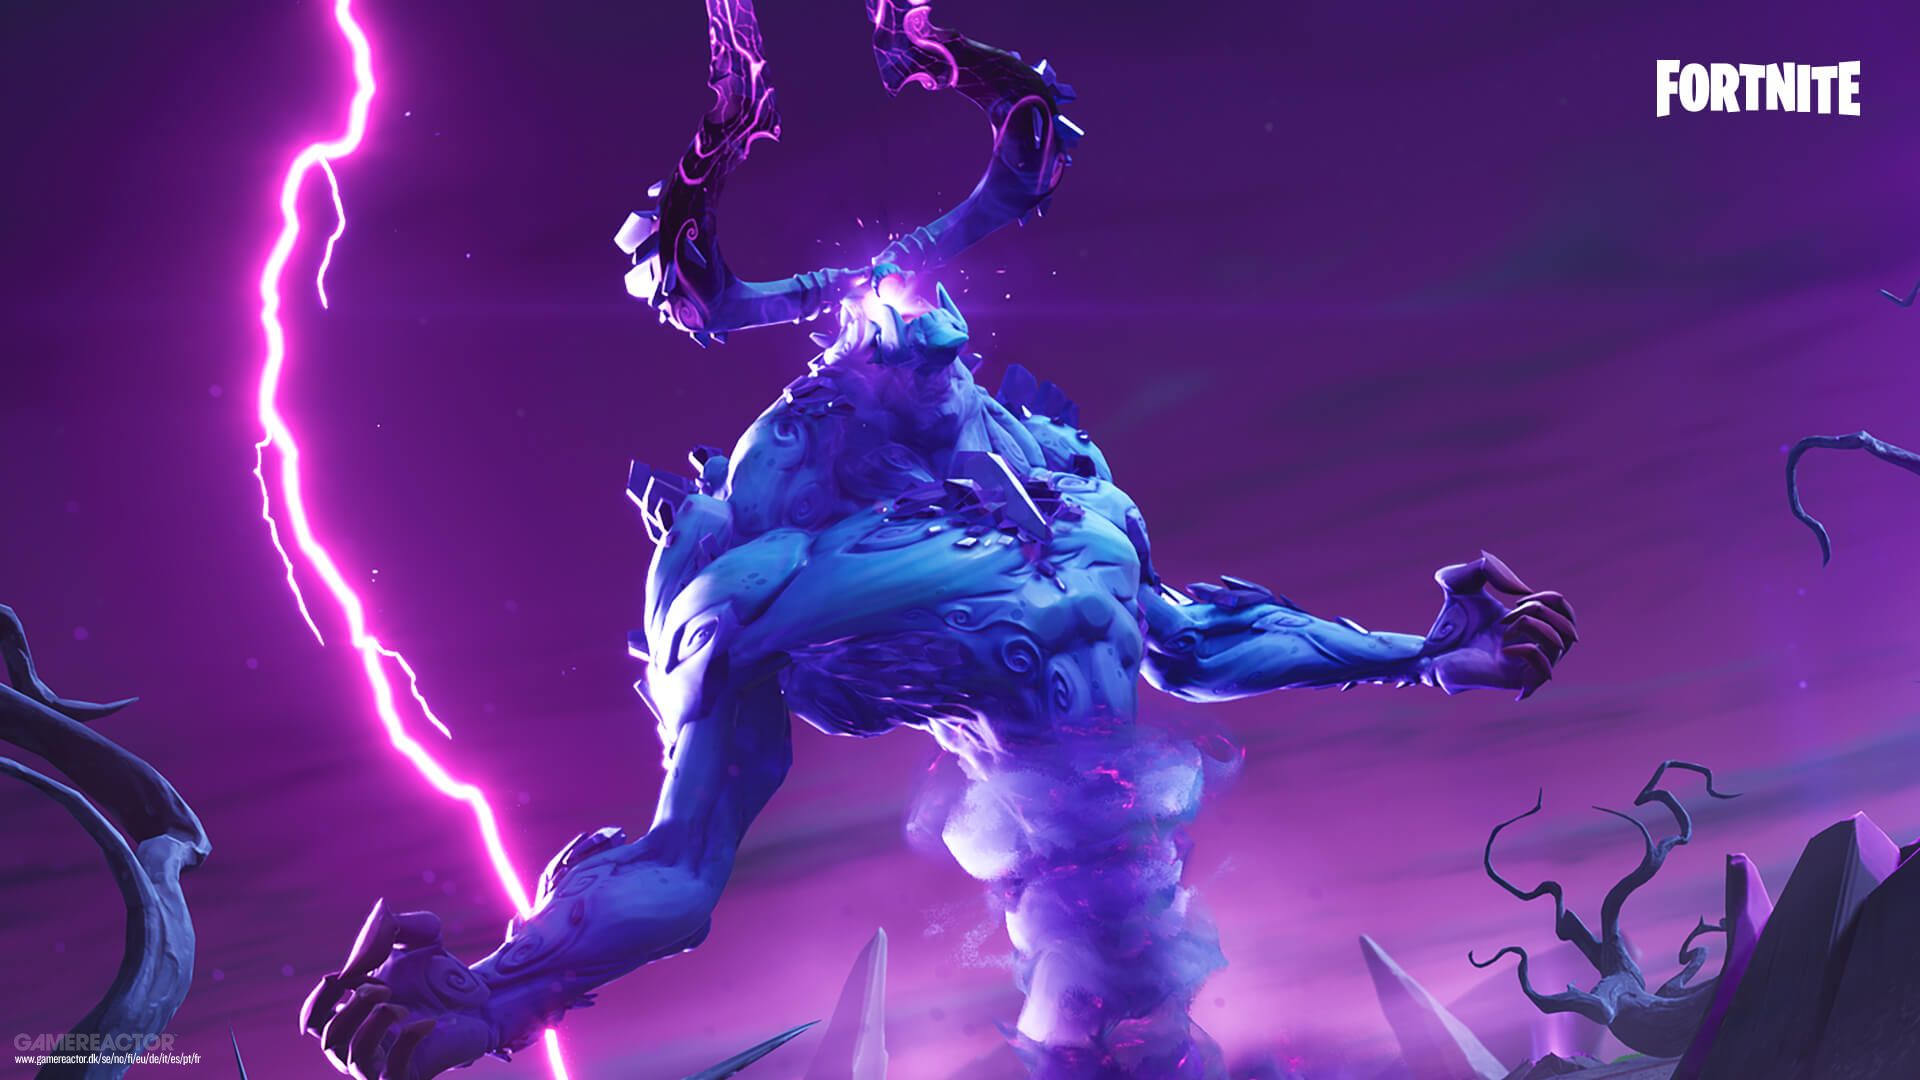 The Fortnite Halloween Event Fortnitemares 2019 Is Now Live